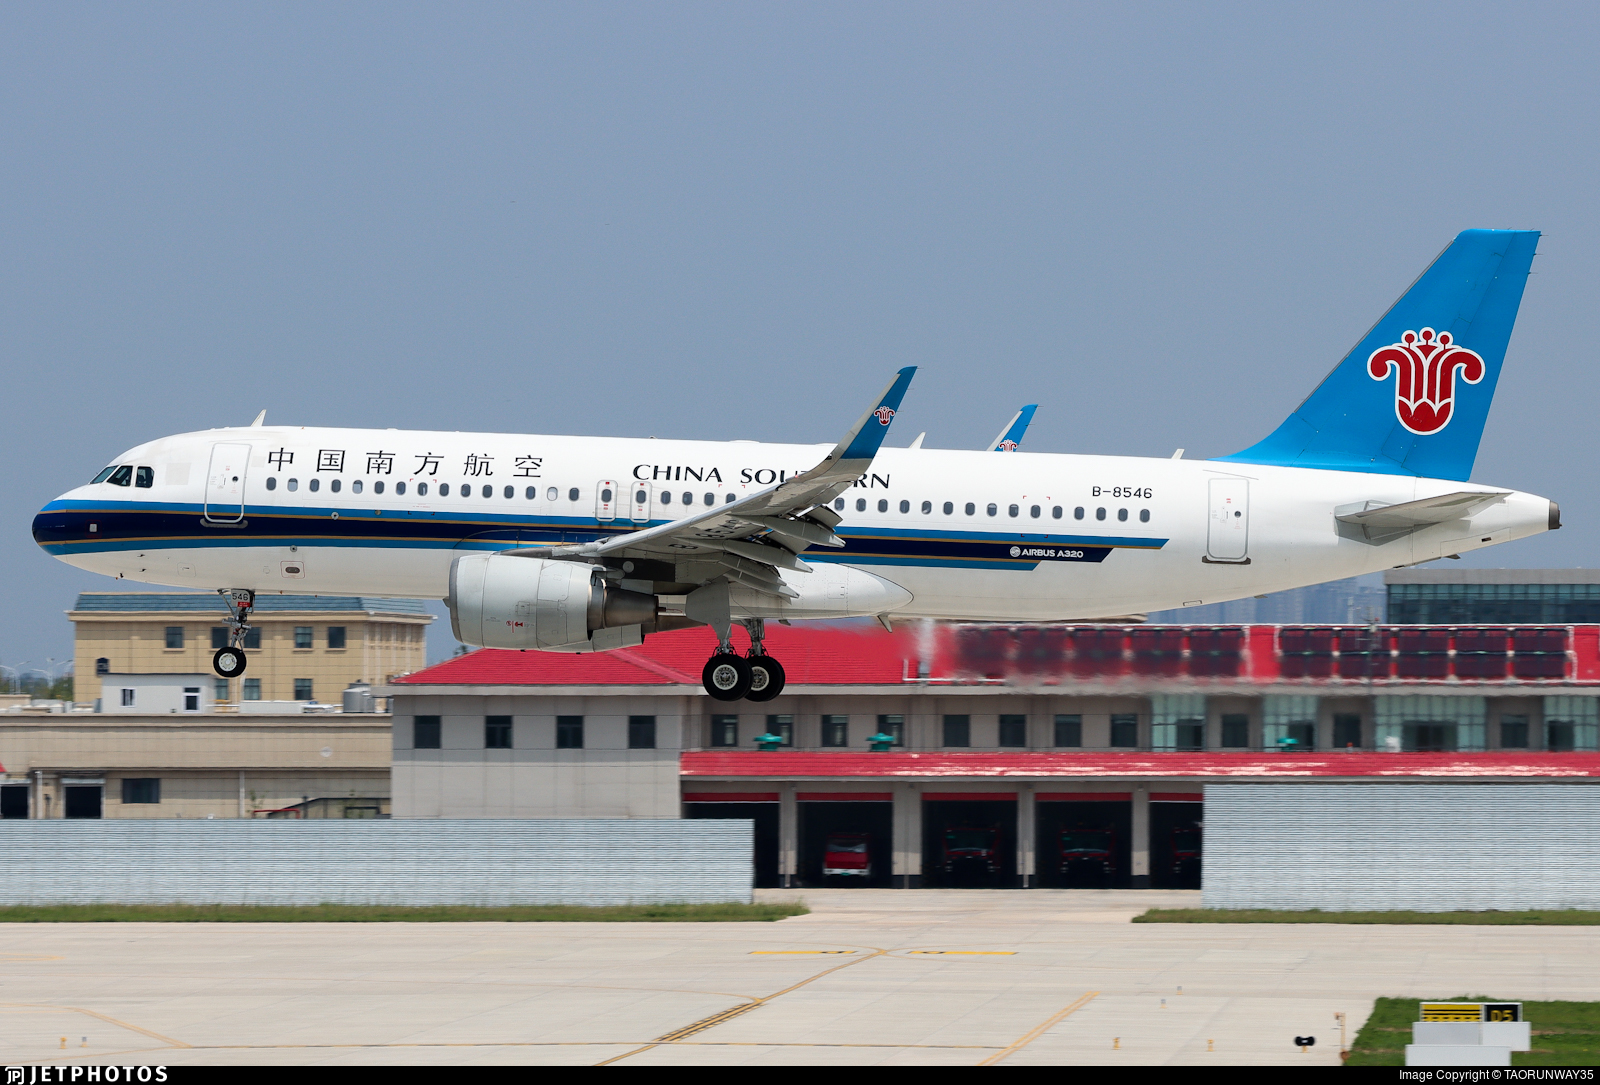 B-8546 - Airbus A320-214 - China Southern Airlines